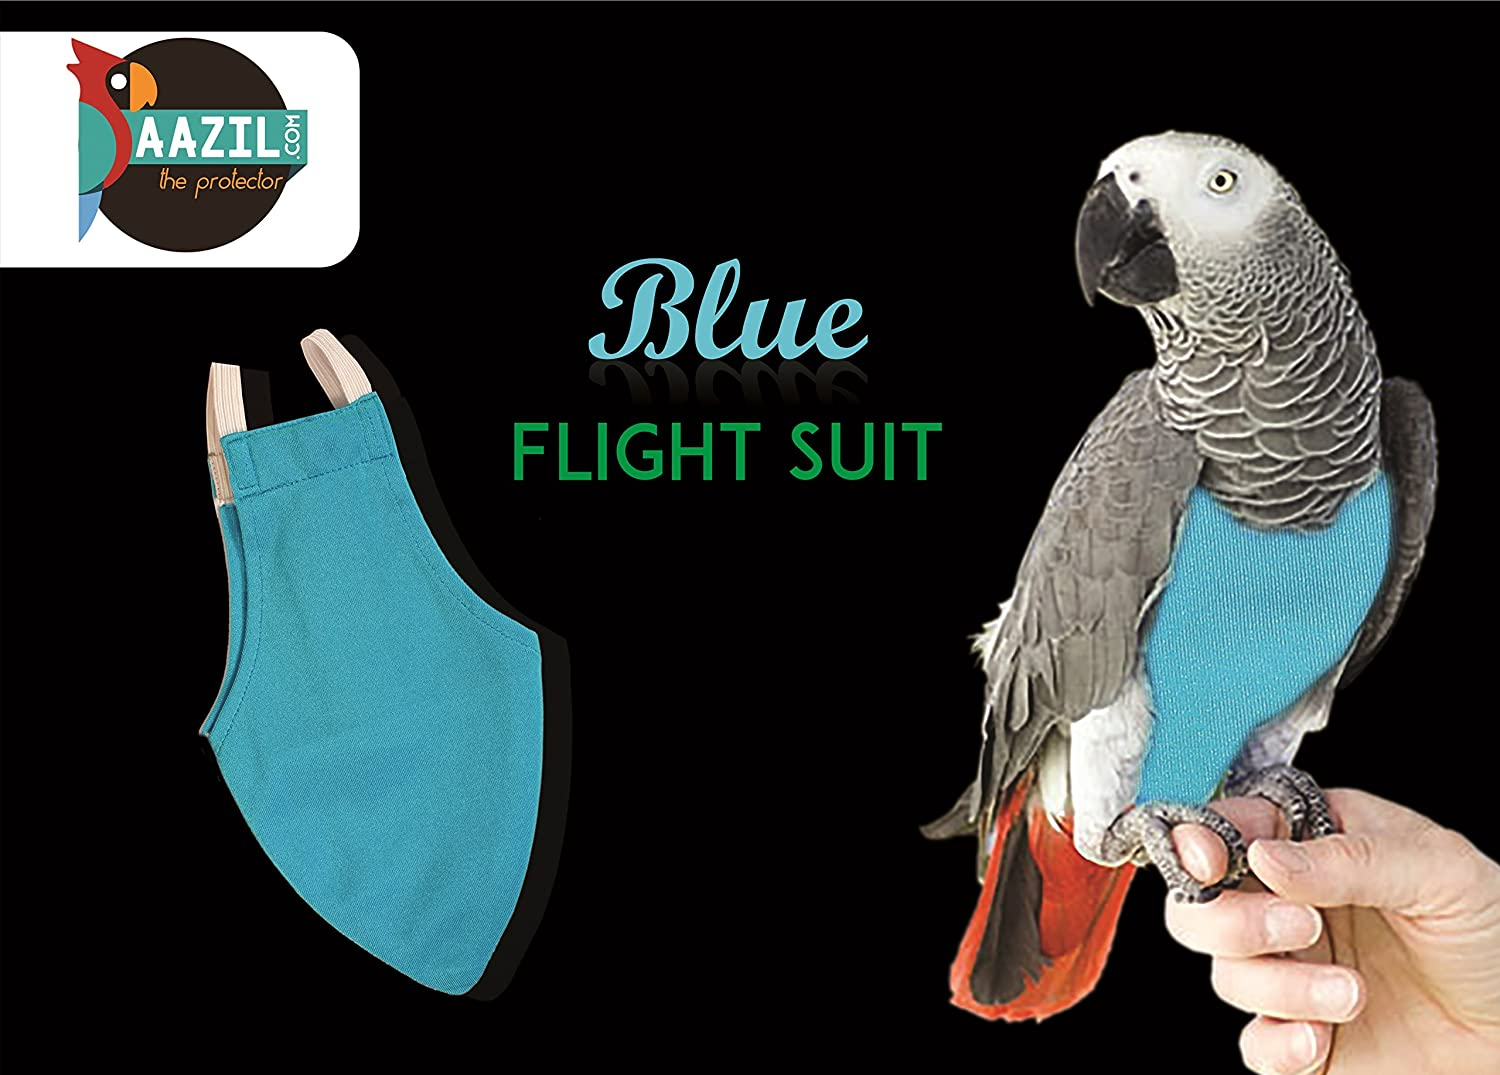 Buy aazil flight suit bird diaper 1 piece size x wide blue buy aazil flight suit bird diaper 1 piece size x wide blue online at low prices in india amazon jeuxipadfo Gallery